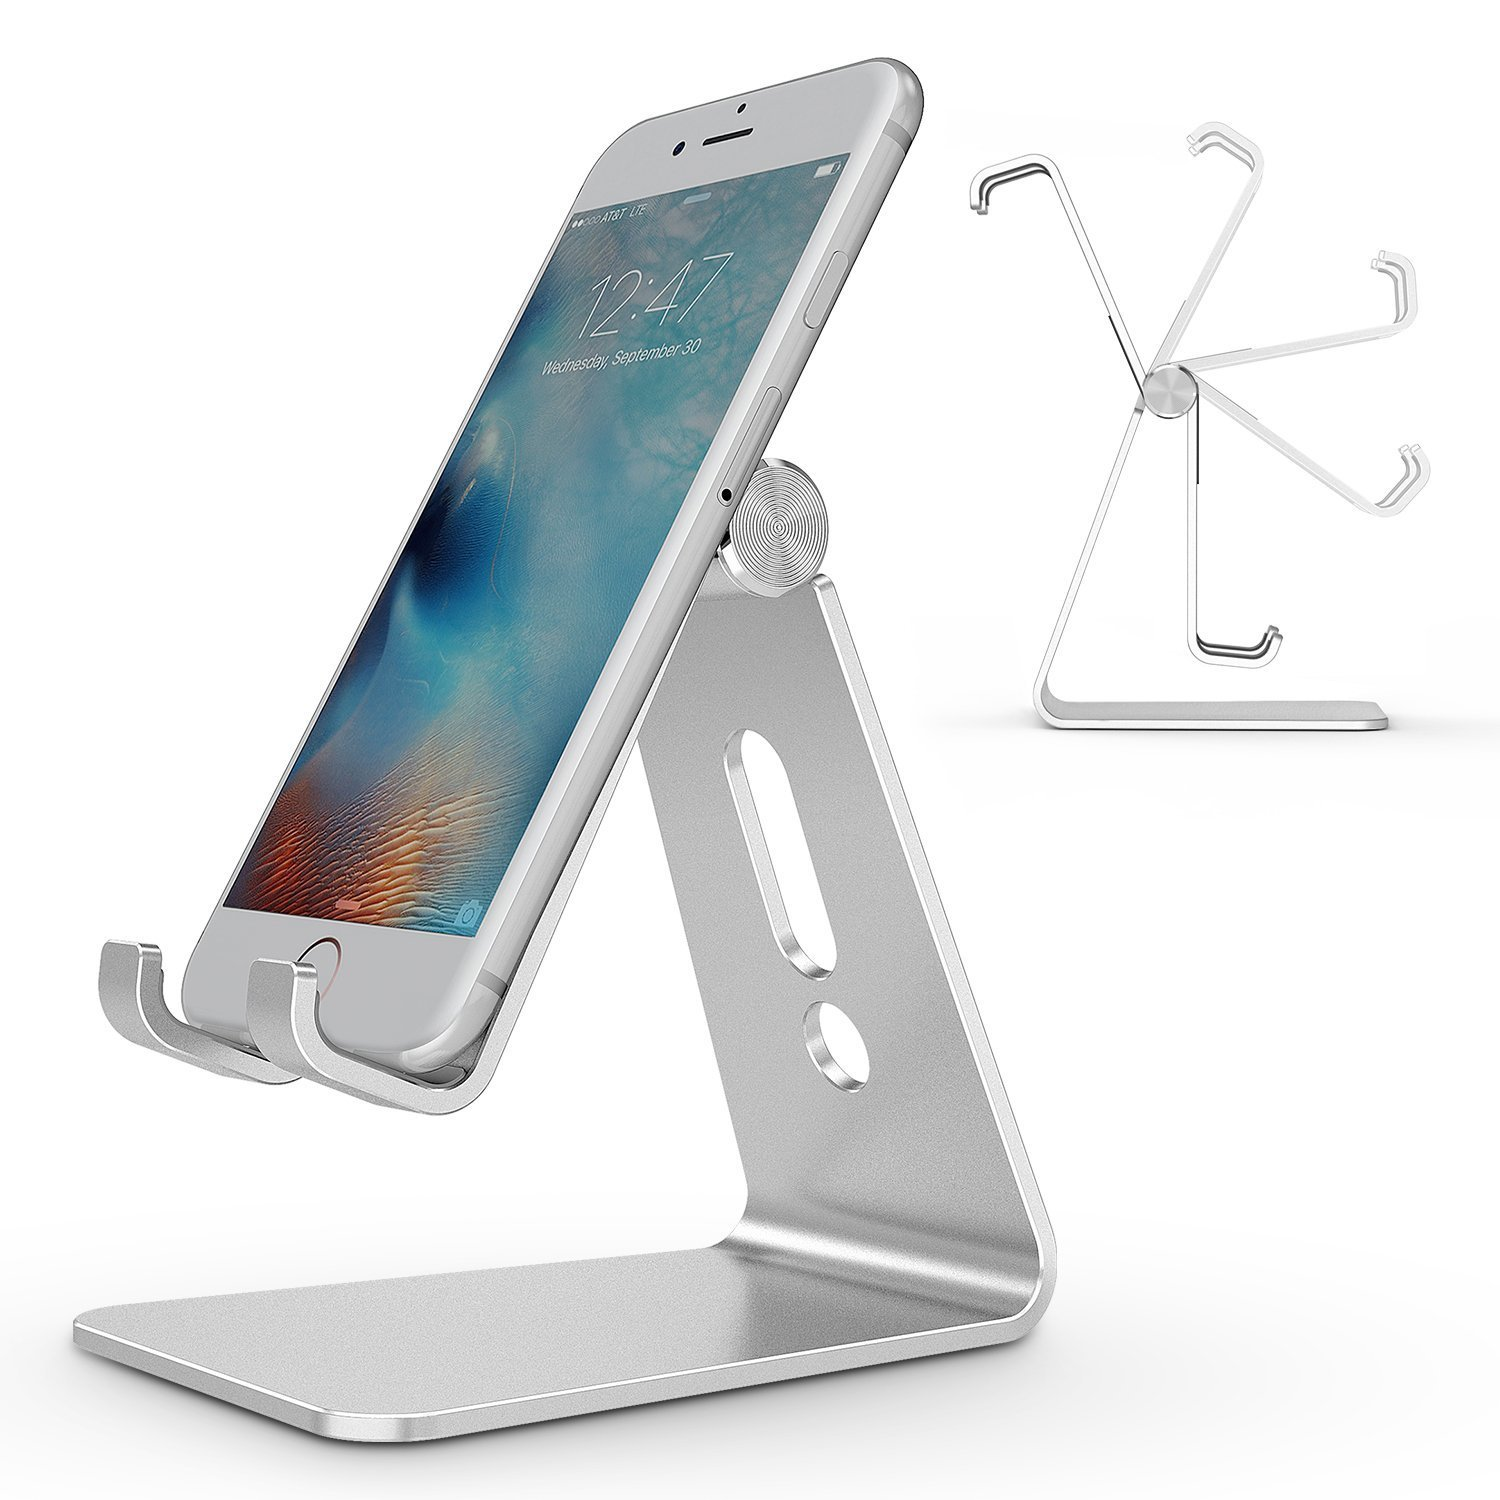 Adjustable Cell Phone Stand, OMOTON Aluminum Desktop Cellphone Stand with Anti-Slip Base and Convenient Charging Port, Fits All Smart Phones, Silver by OMOTON